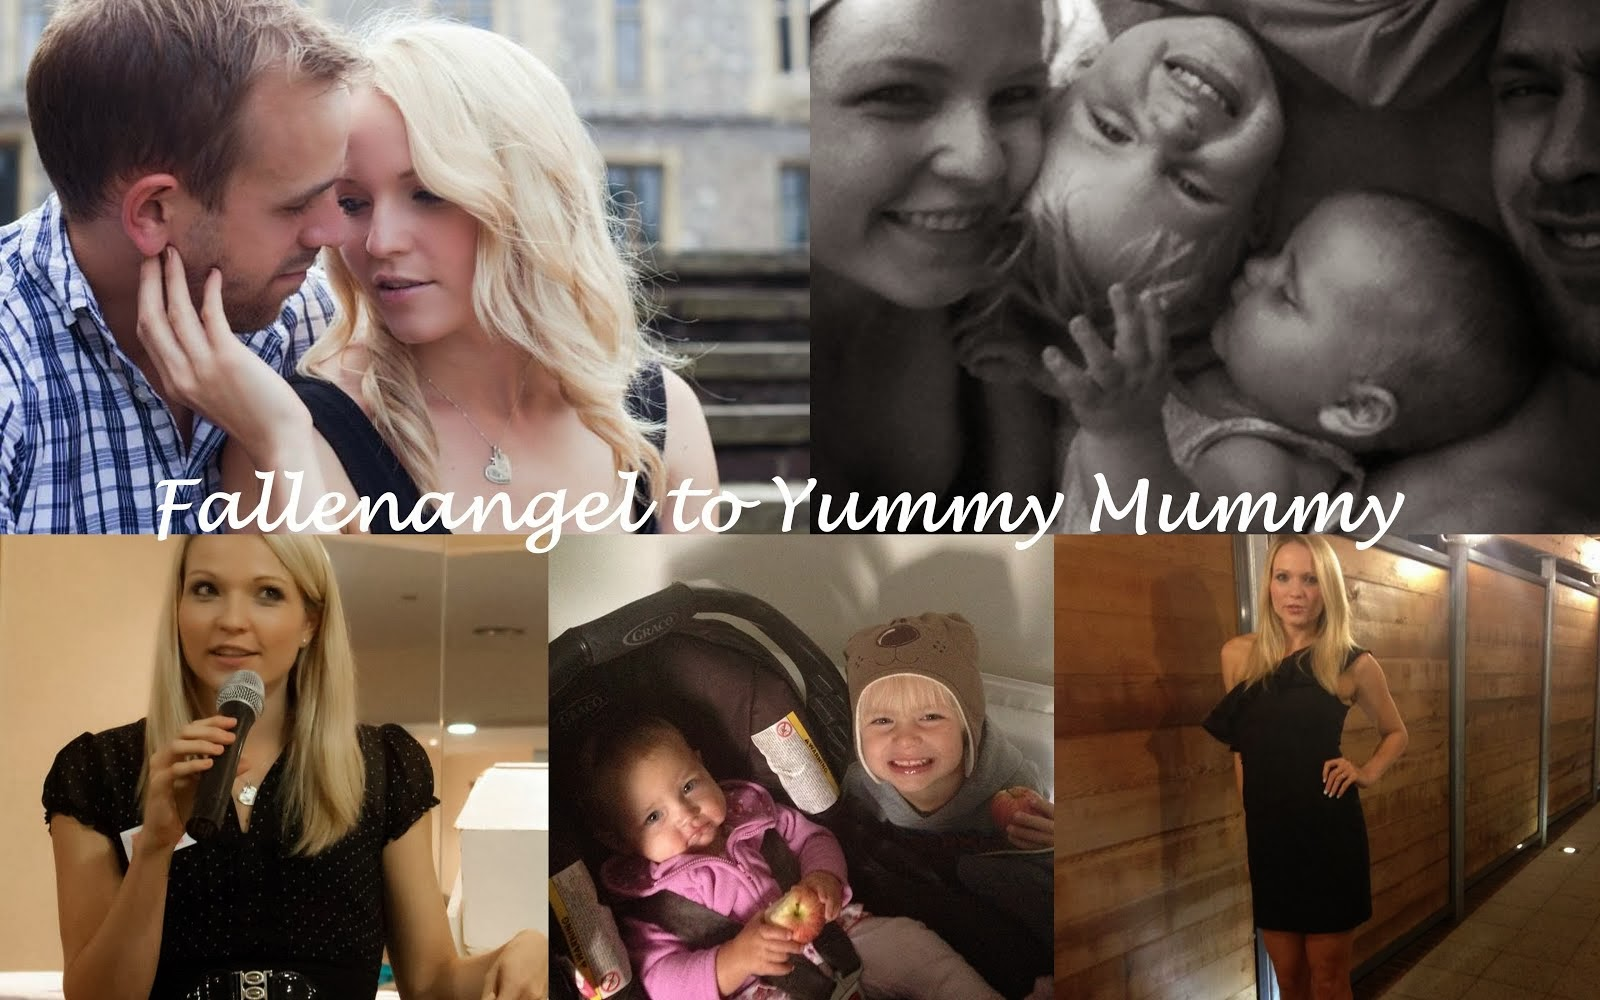 From Fallenangel to Yummy Mummy